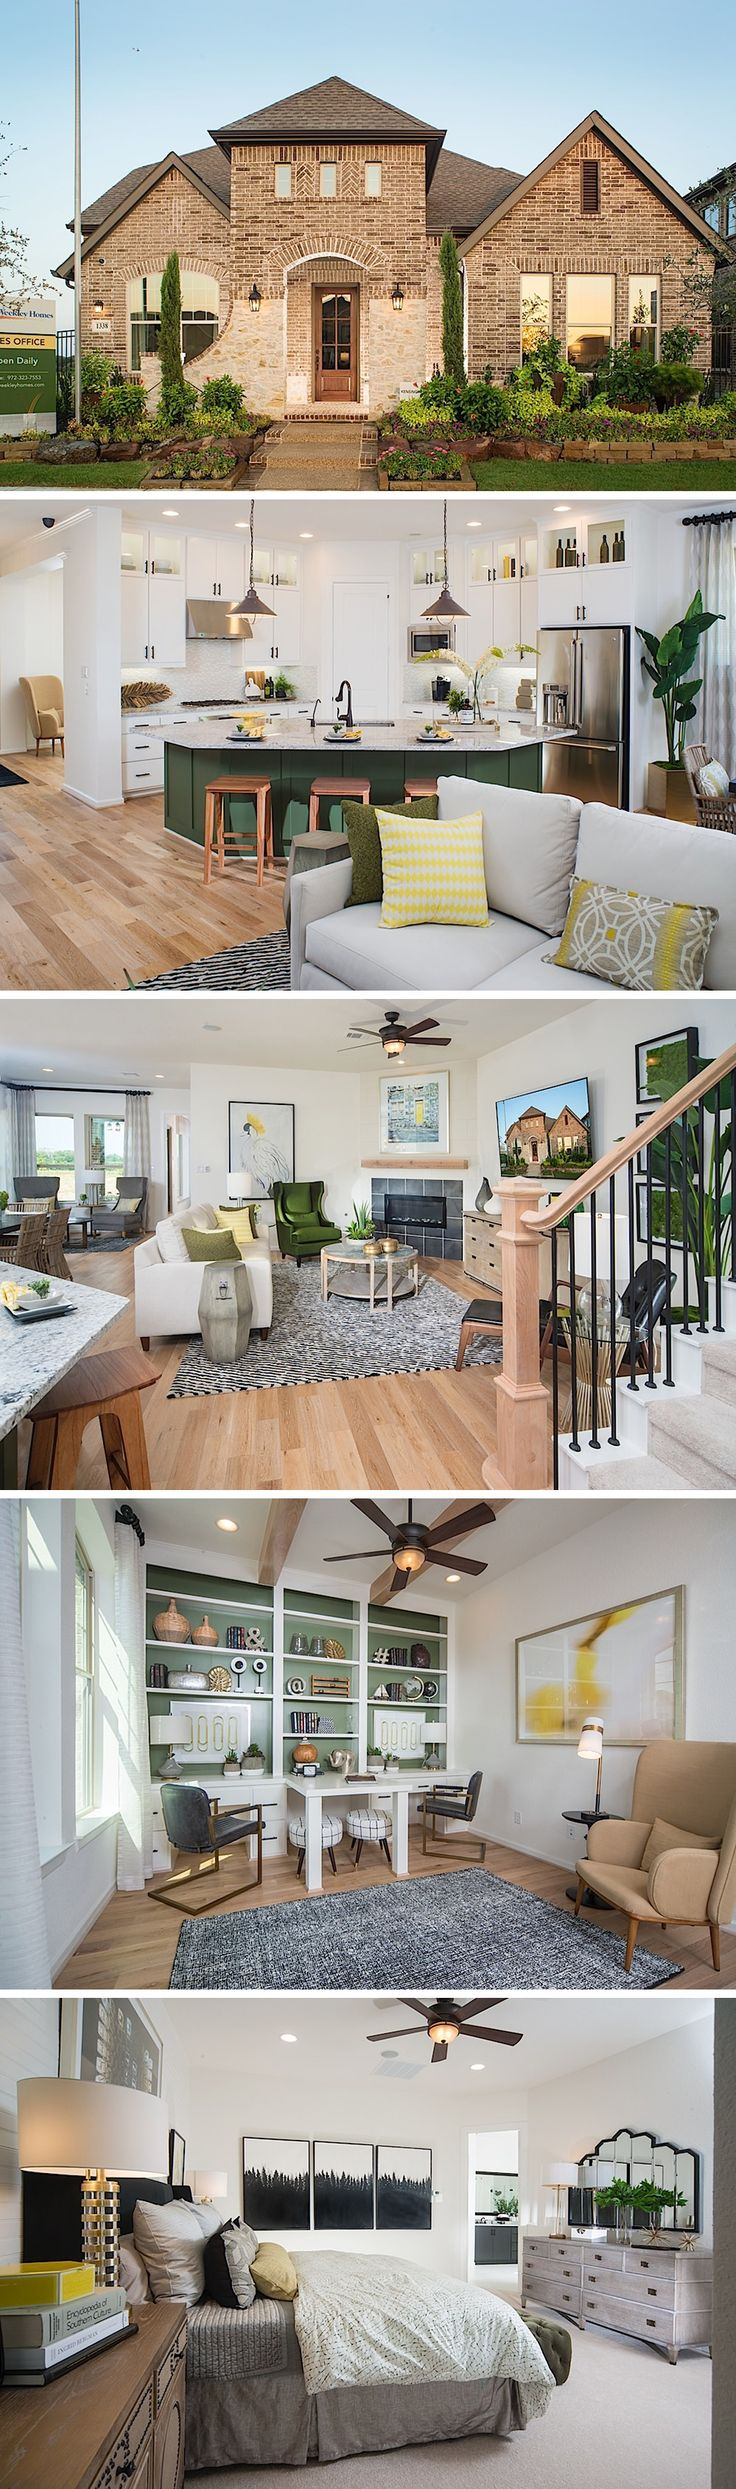 The Kensington in Arlington, TX features vibrant finishes with an earth-tone theme. This classic floor plan can be built with 3 or 4 bedrooms with 2 or 3 baths and uses both brick and stone as the exterior. #davidweekleyhomes #dallas #green #lakefront